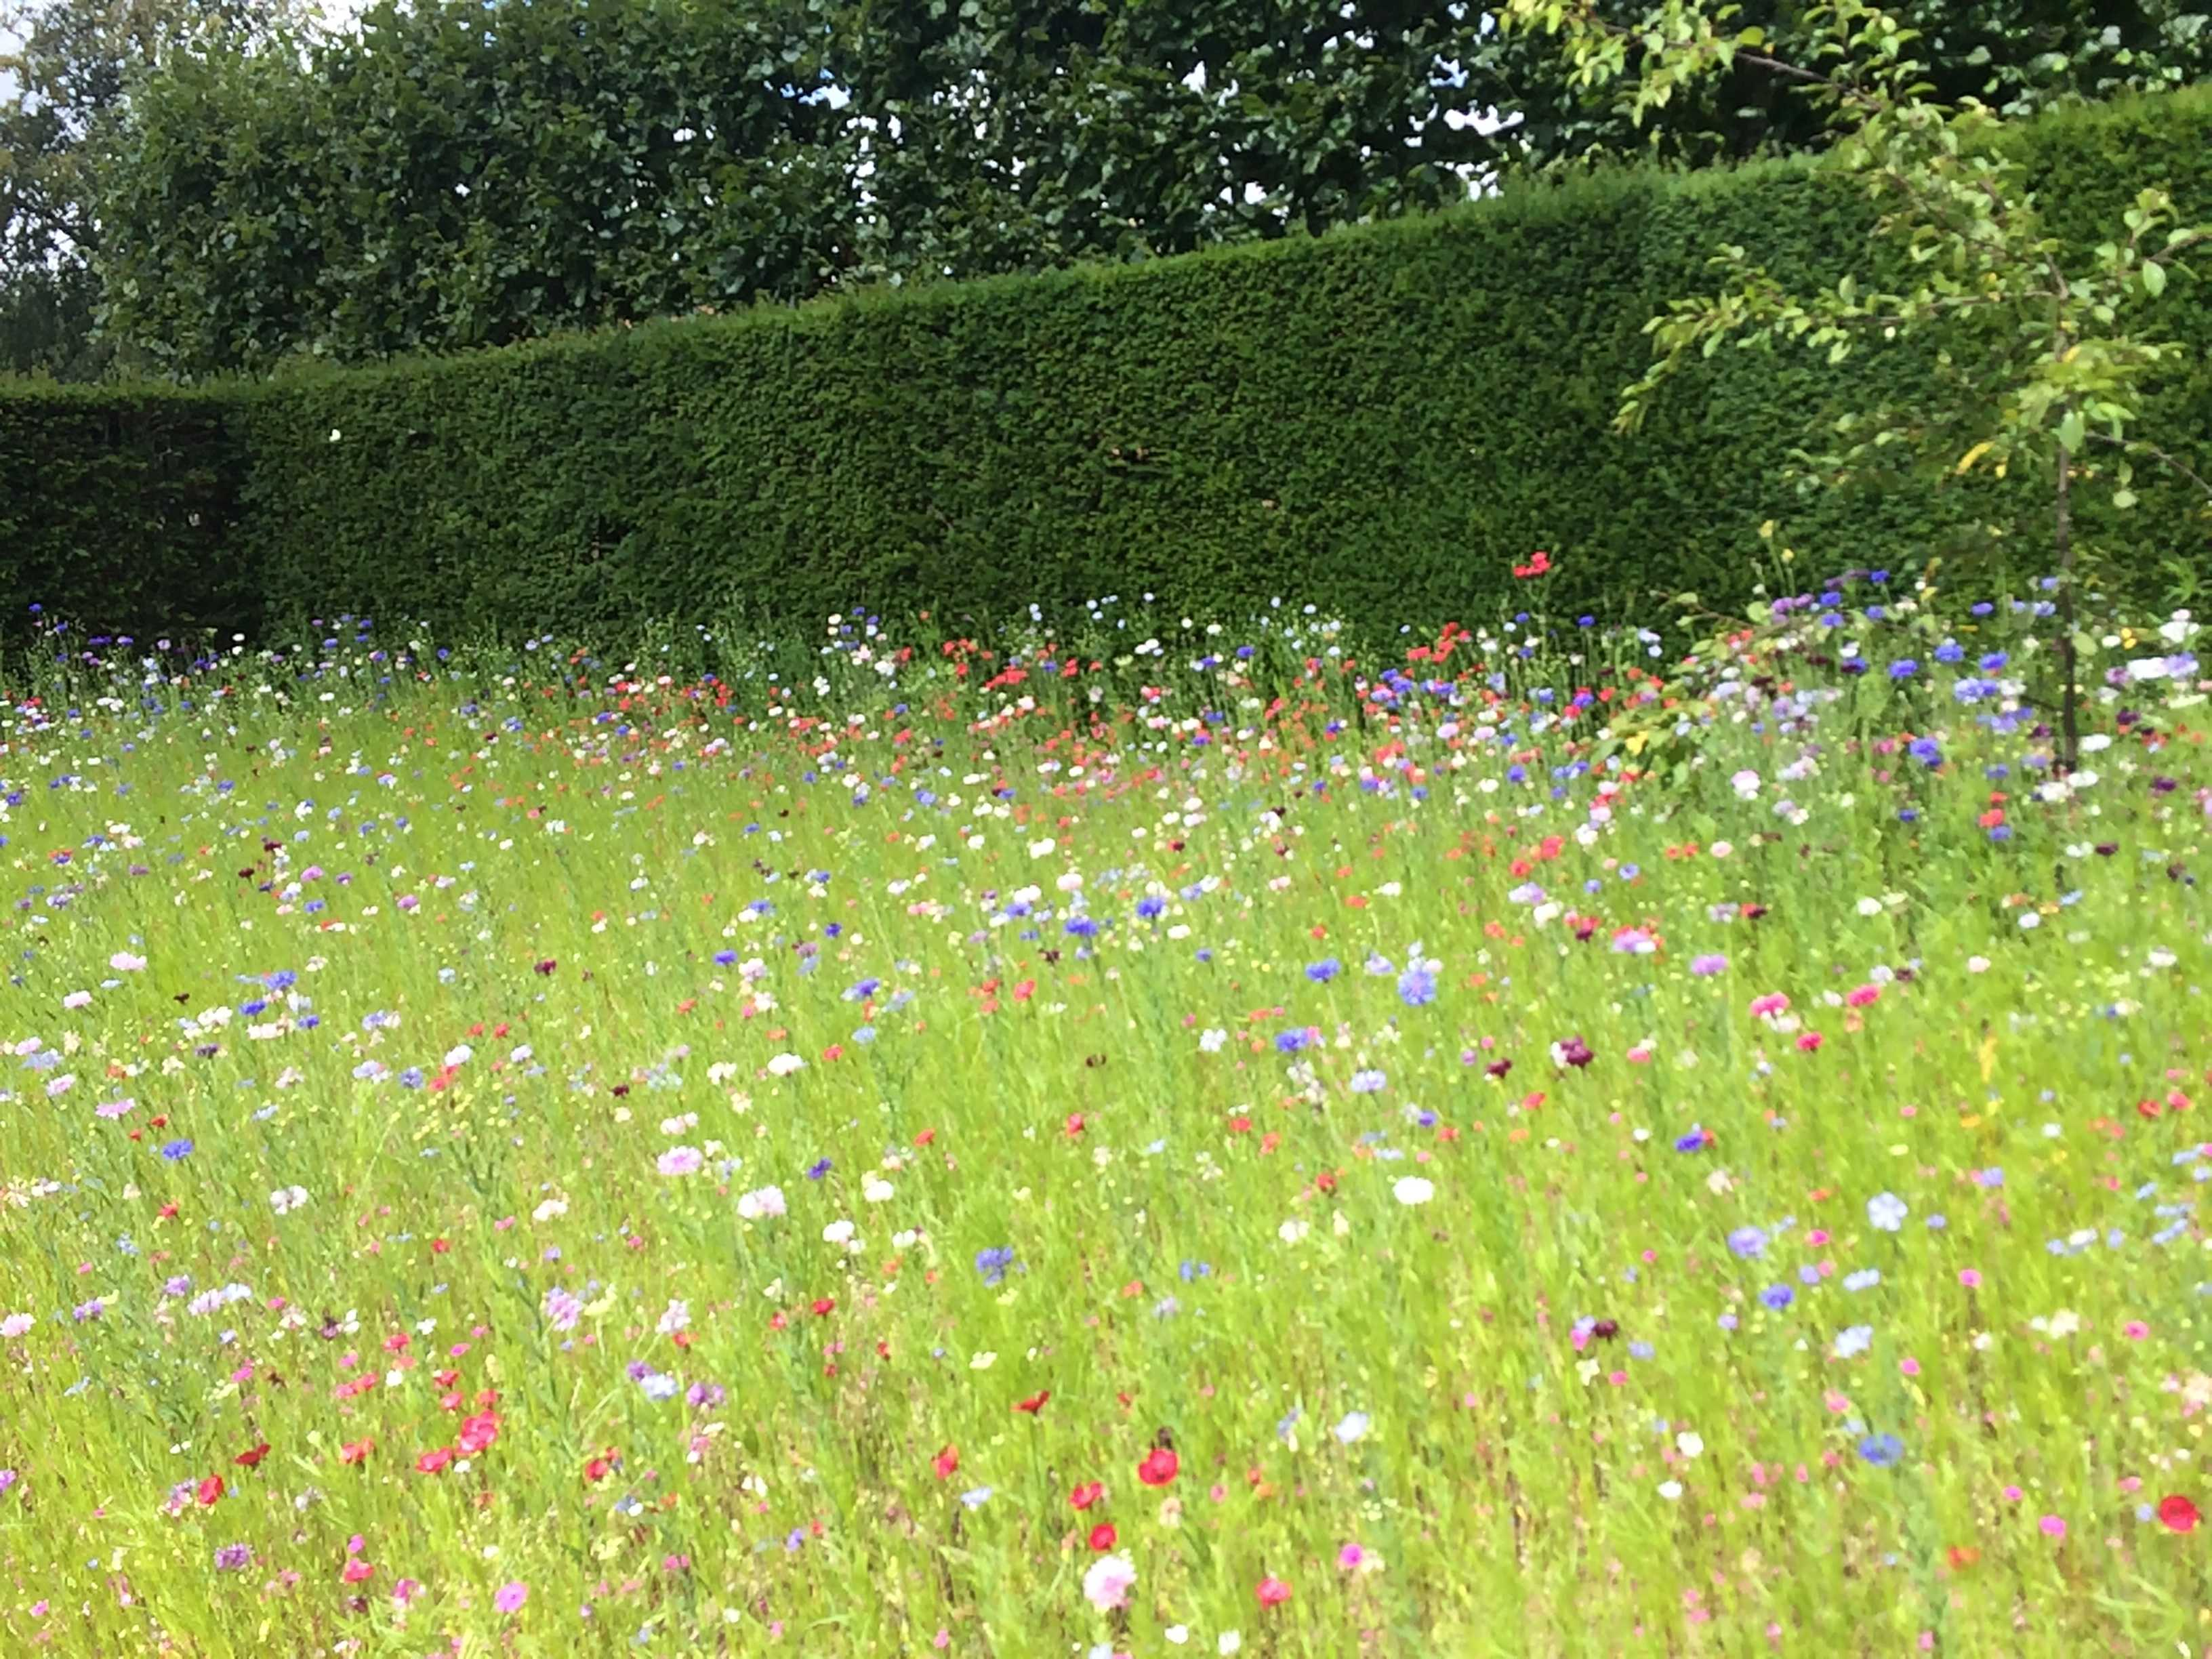 Flower field with mixed wild flowers at the entry to Sissinghurst Castle Garden in UK